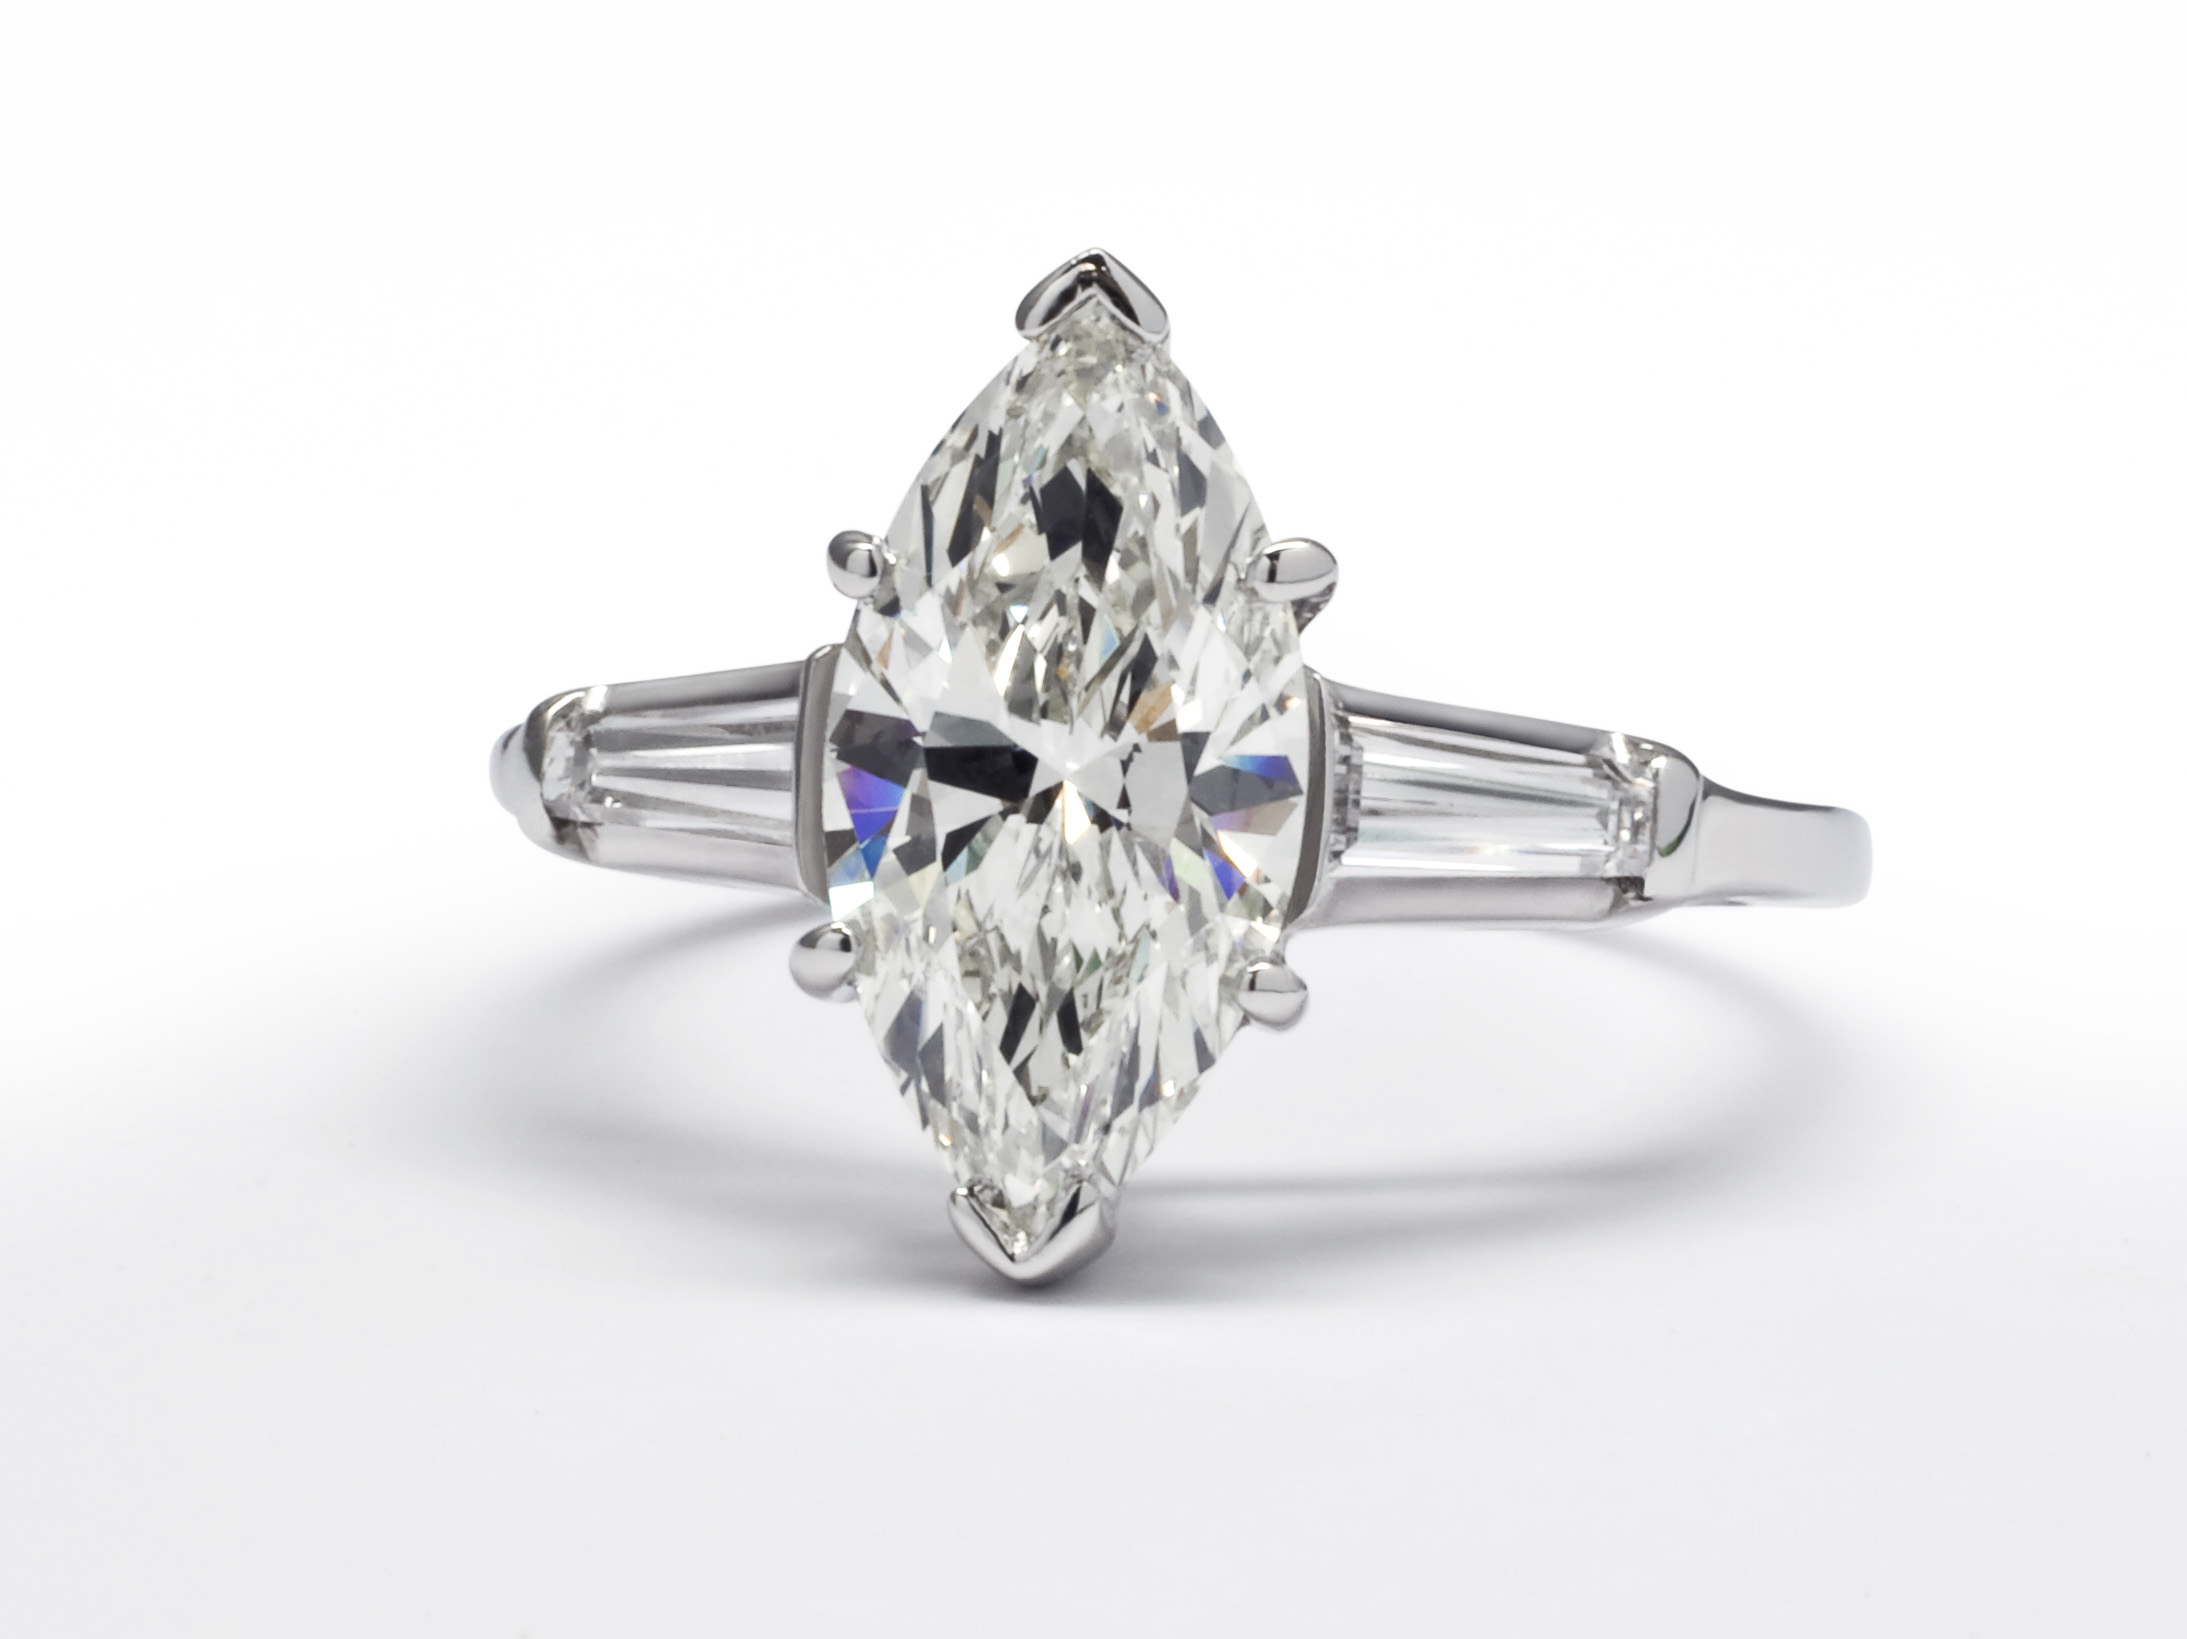 Jcrs jewelry insurance issues junglespirit Image collections